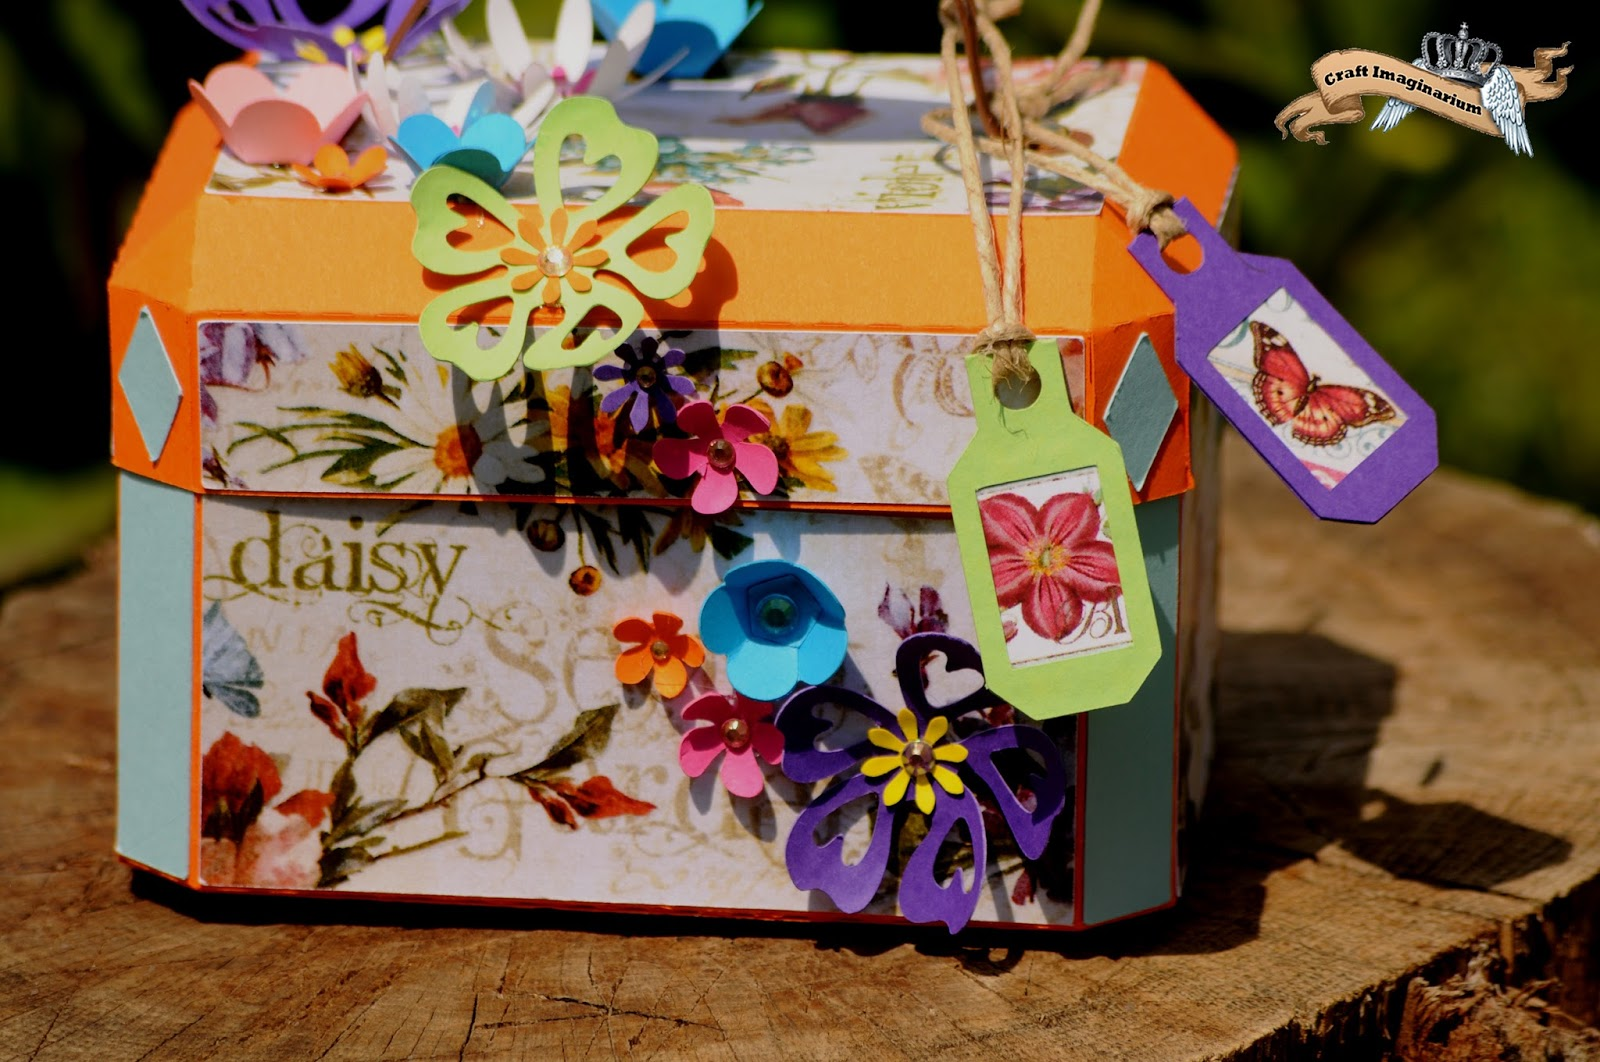 Craft imaginarium birthday gifts for girls 2016 for Craft presents for girls